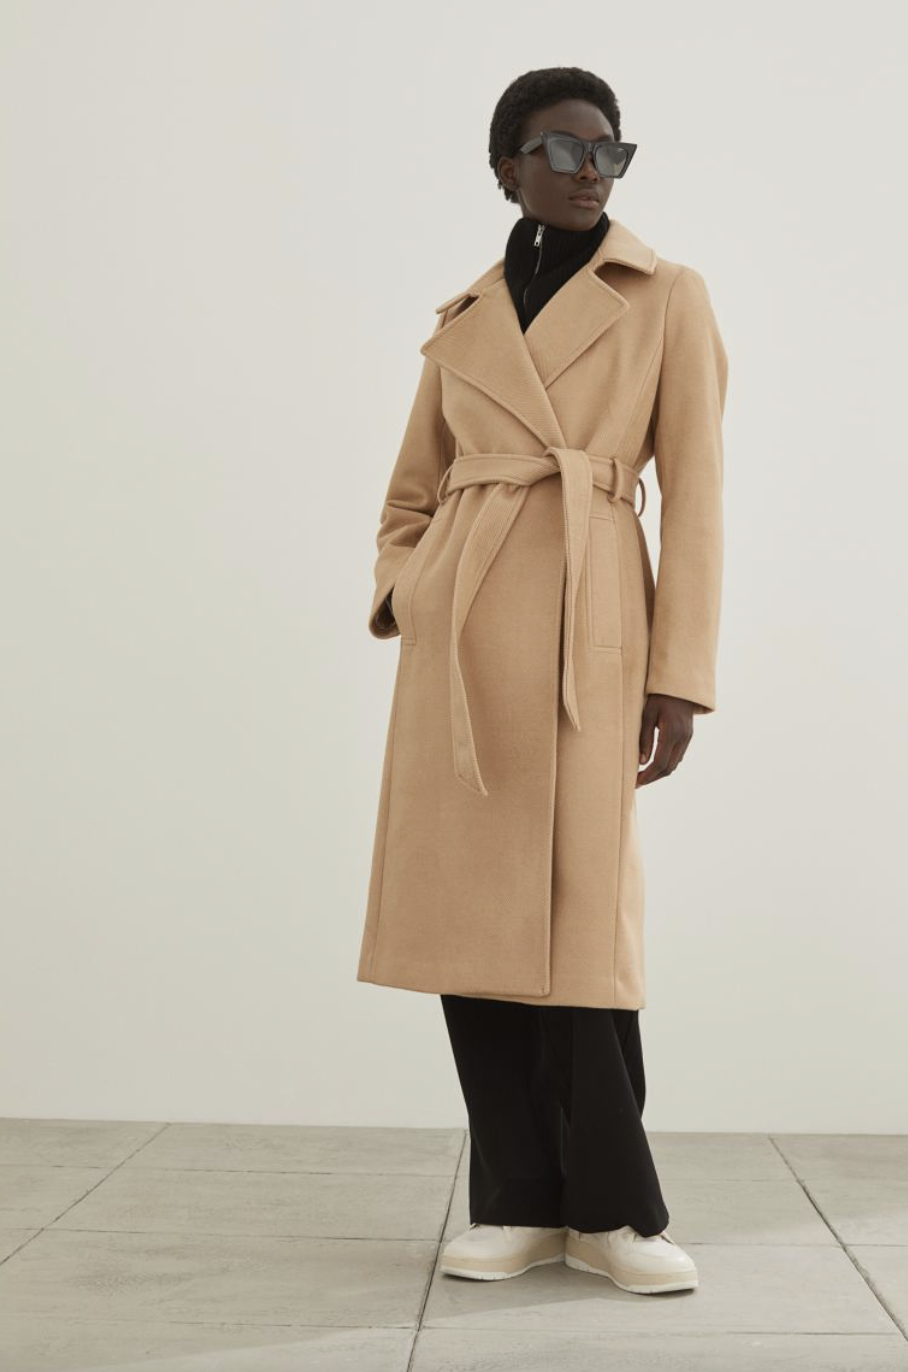 black model with short hair wearing camel Tie Belt Coat, black pants, and white shoes